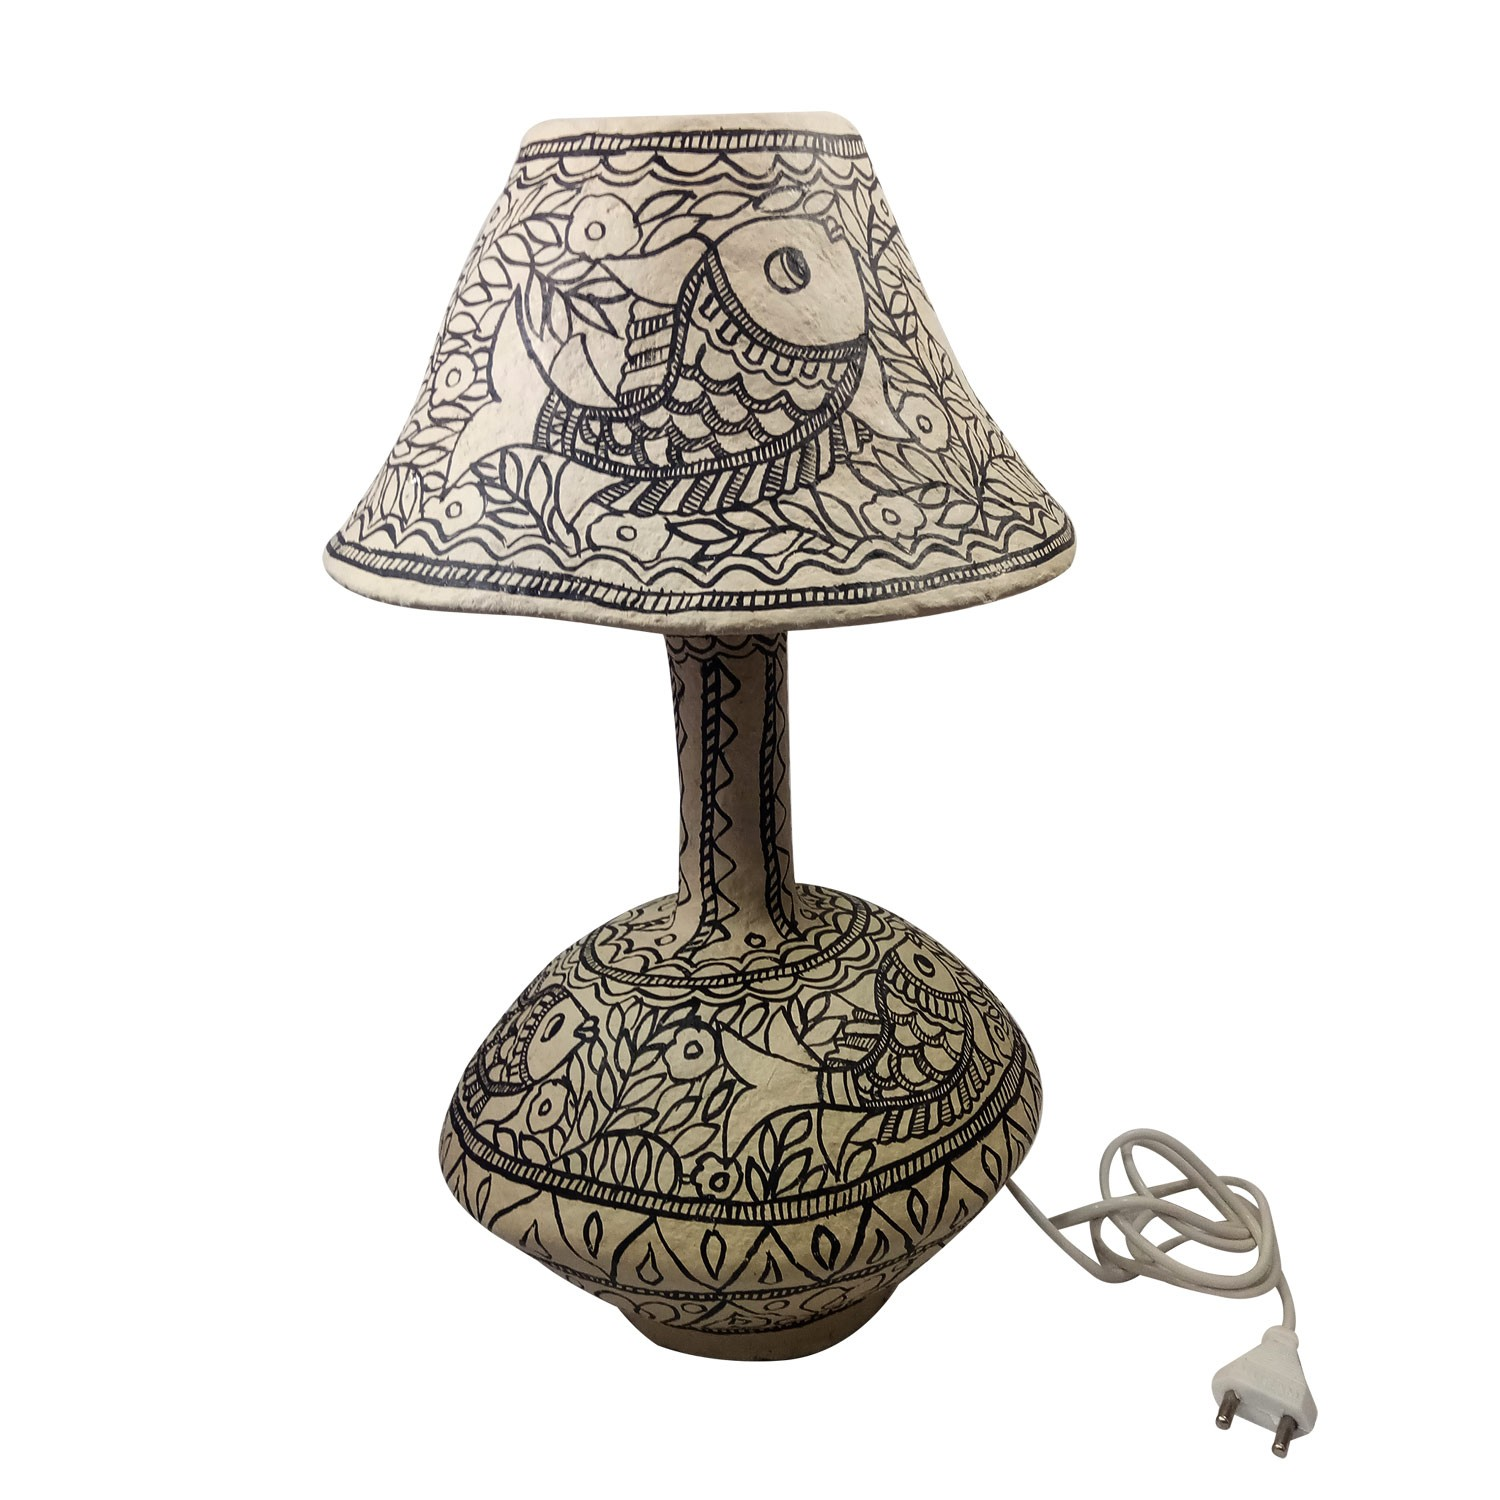 Handmade exclusive paper mache  Multicolor Lamp With  Beautiful Madhubani Painting By Rural Artisan.